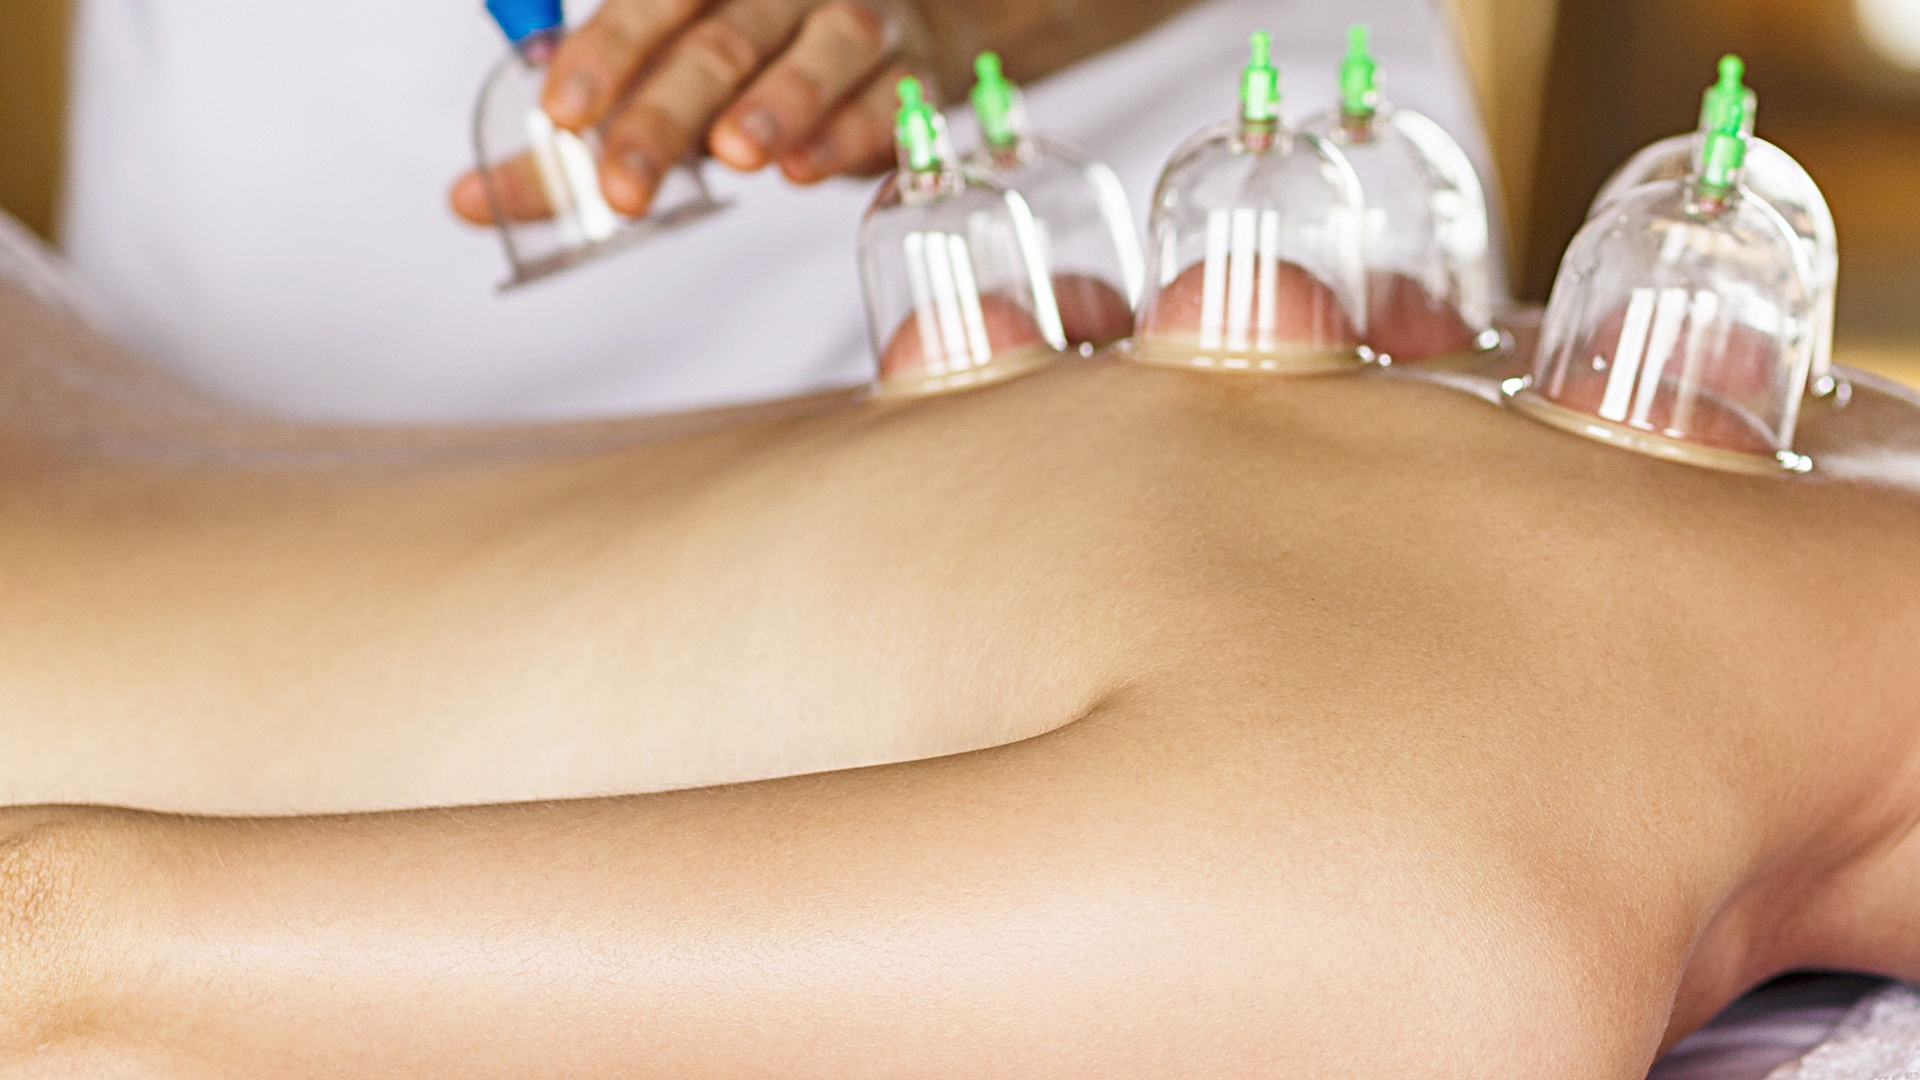 Cupping Treamtment   Cupping targets the body's connective tissue. This therapy results in a powerful detoxification of problem tissue, it will often bring trapped metabolic waste, toxins, and cellular debris to the surface in a very visual way, but these are NOT BRUISES. This results in a higher metabolism, more energy, and a reduction in bloating/water weight, and can be used to reduce cellulite. When the tissue is opened back up to circulation and proper lymph drainage, the tissue functions better overall.